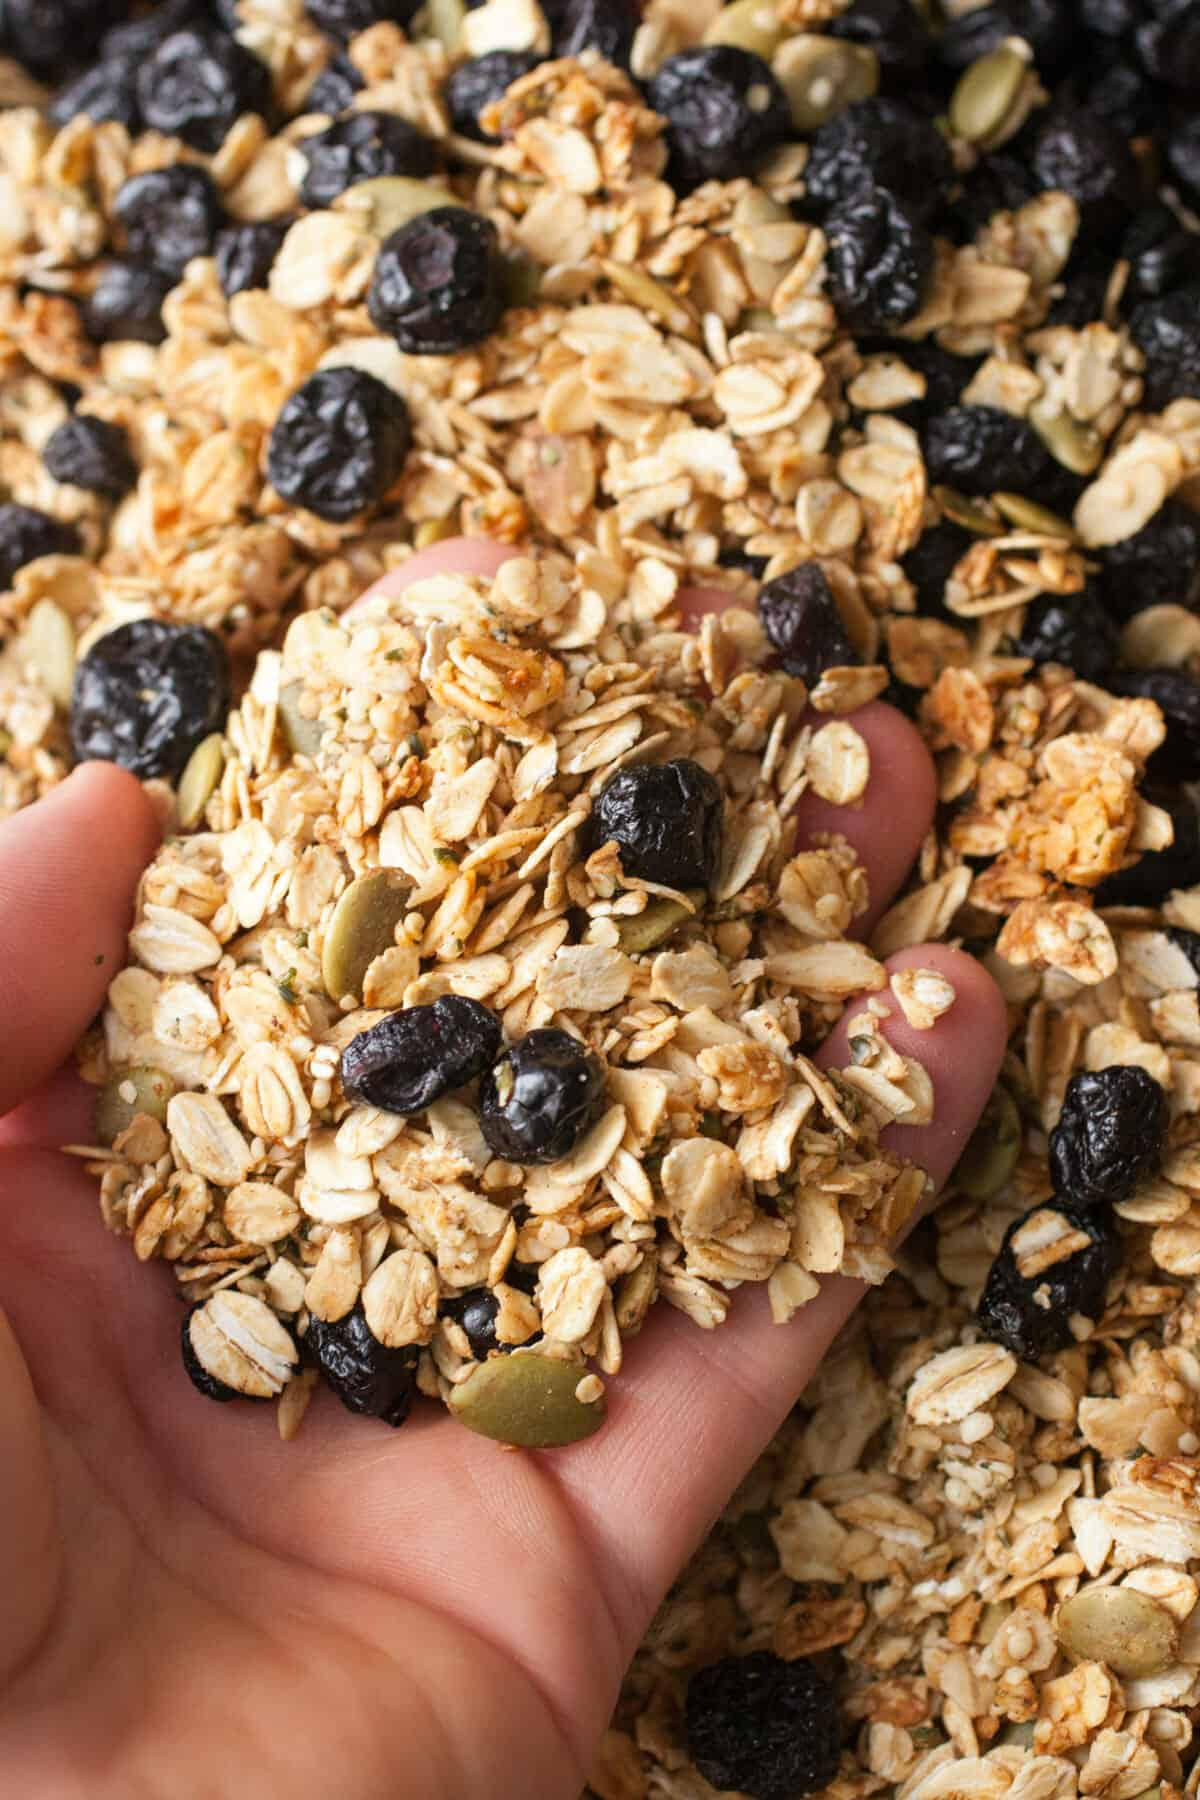 Hemp Seed Pumpkin Granola: Crunchy granola with loads of fiber. I like to add just a touch of sweetness with real honey and dried blueberries. Very good with milk or yogurt! | macheesmo.com